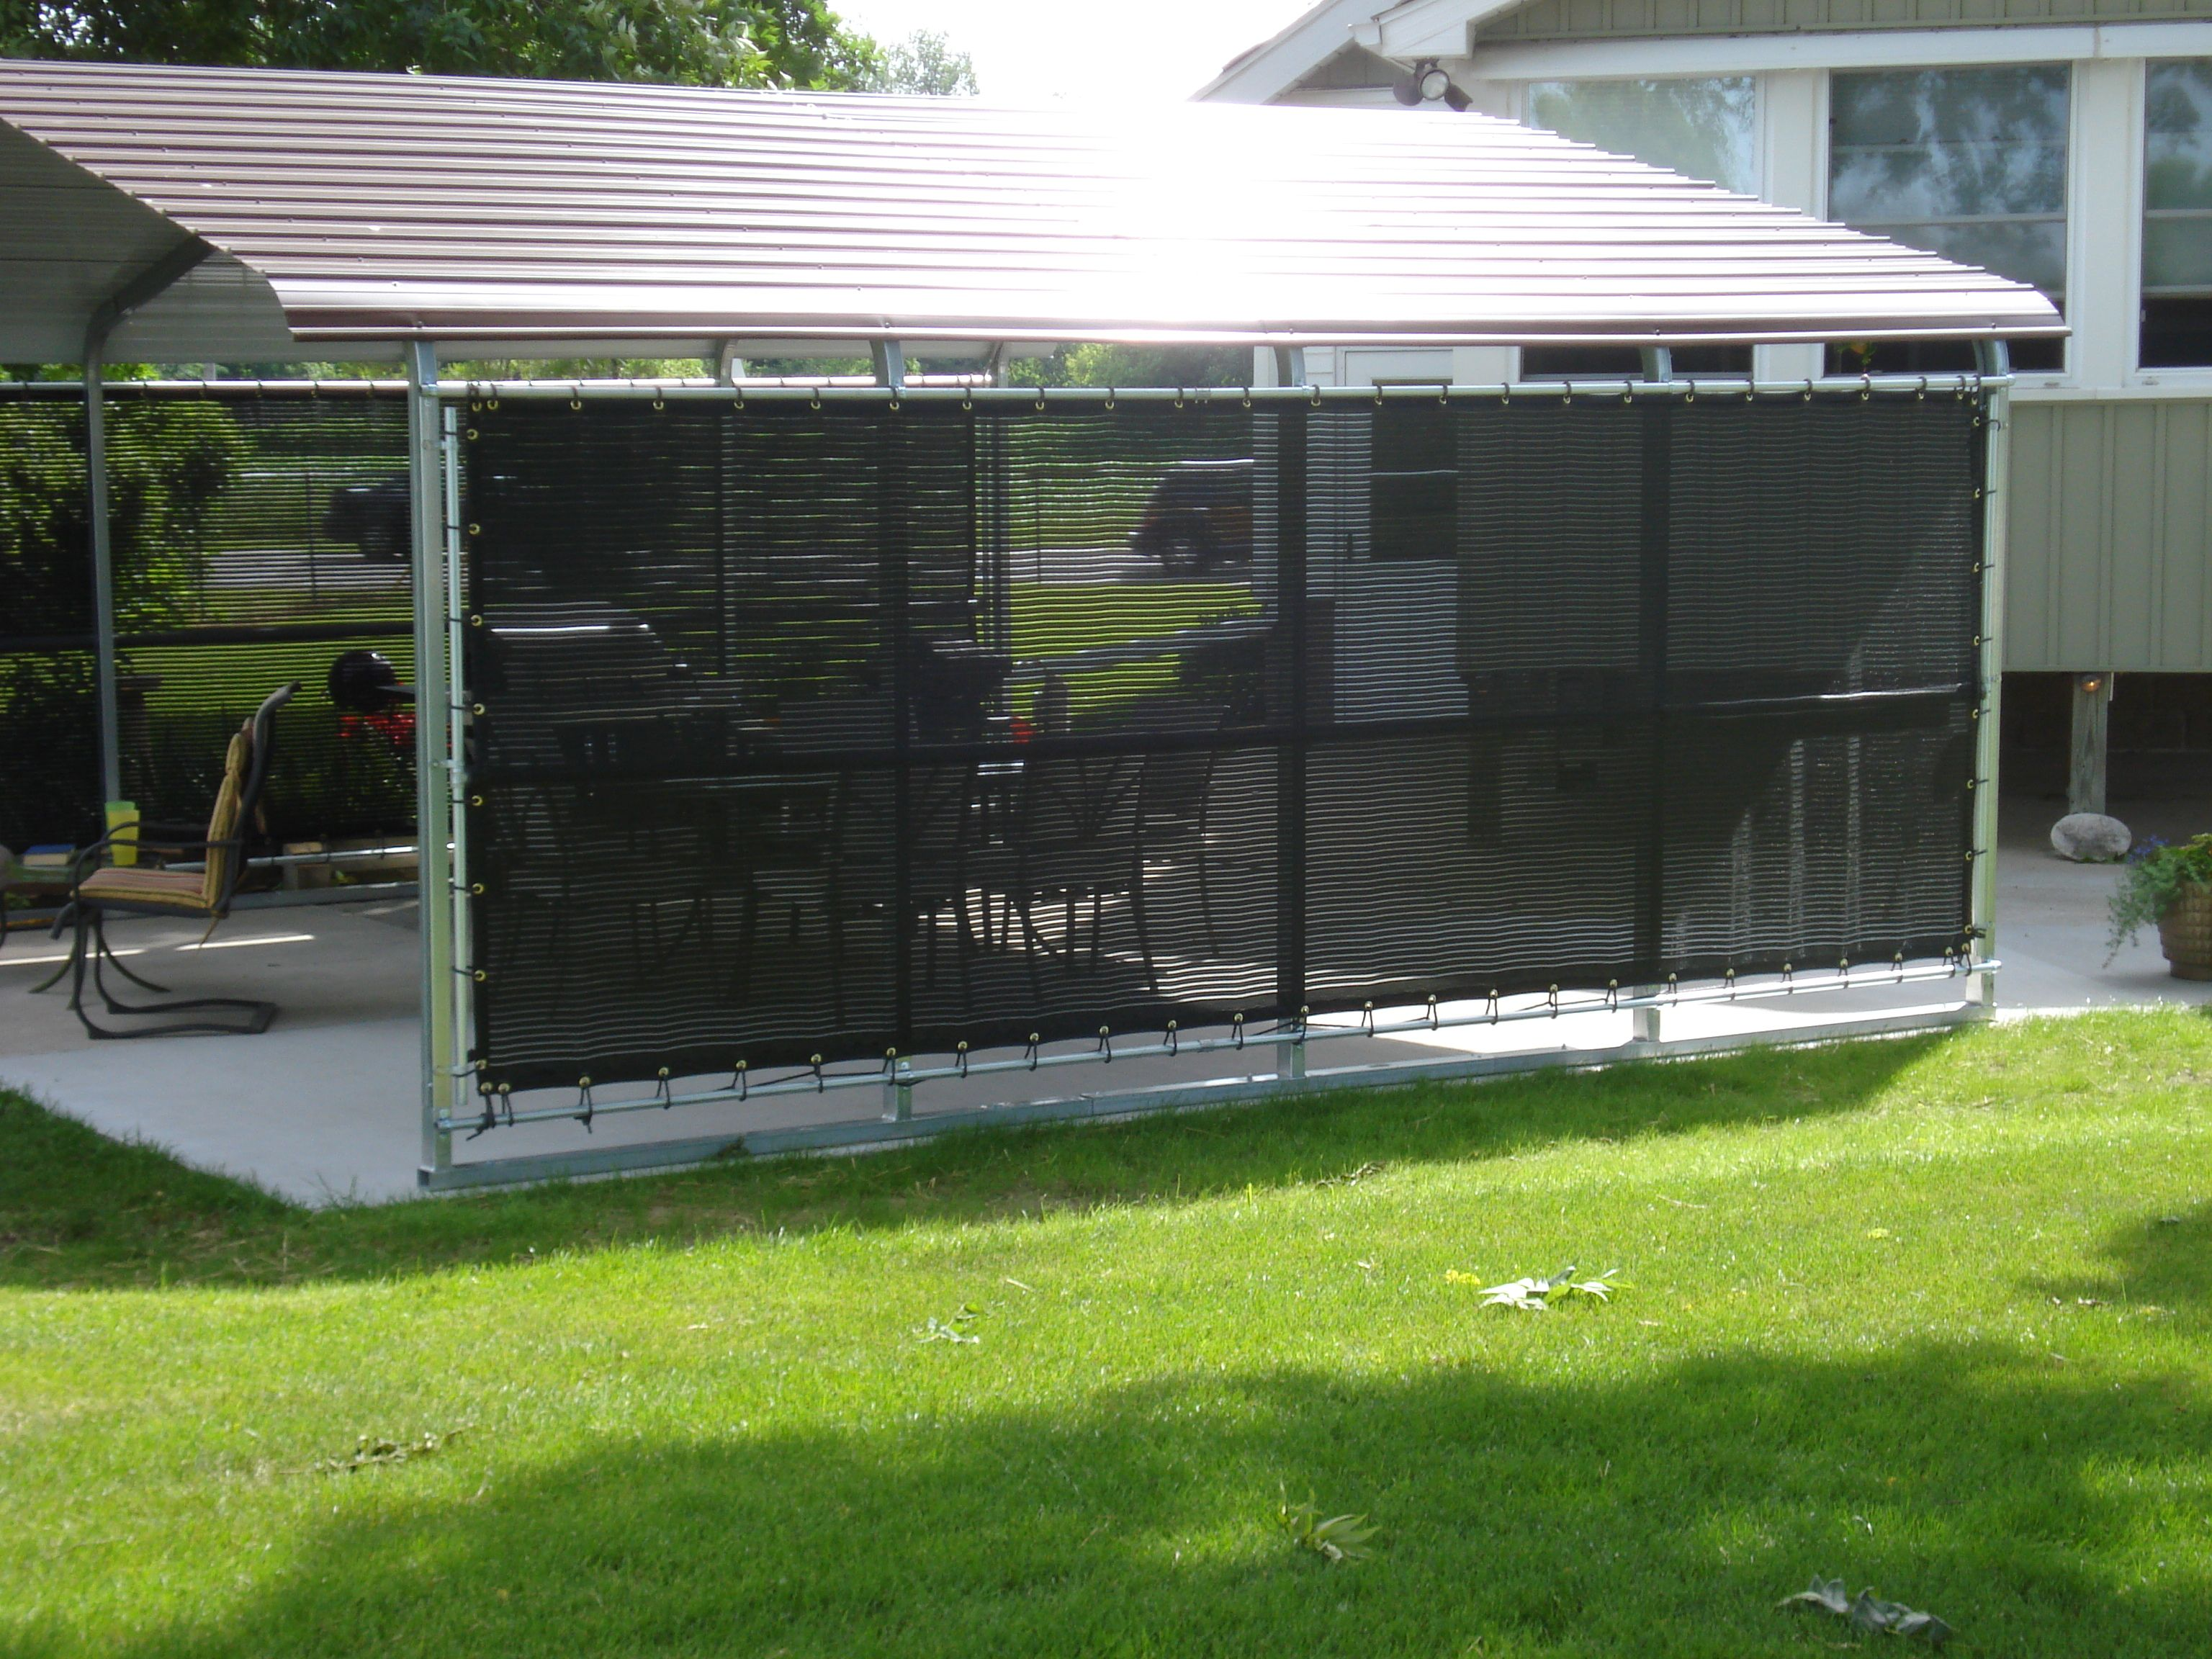 Exceptionnel Add Shade To Your Backyard Patio With Strokemaster Windscreens. Block UV  Rays And Add Protection From Wind And Rain. Www.windscreensupply.net